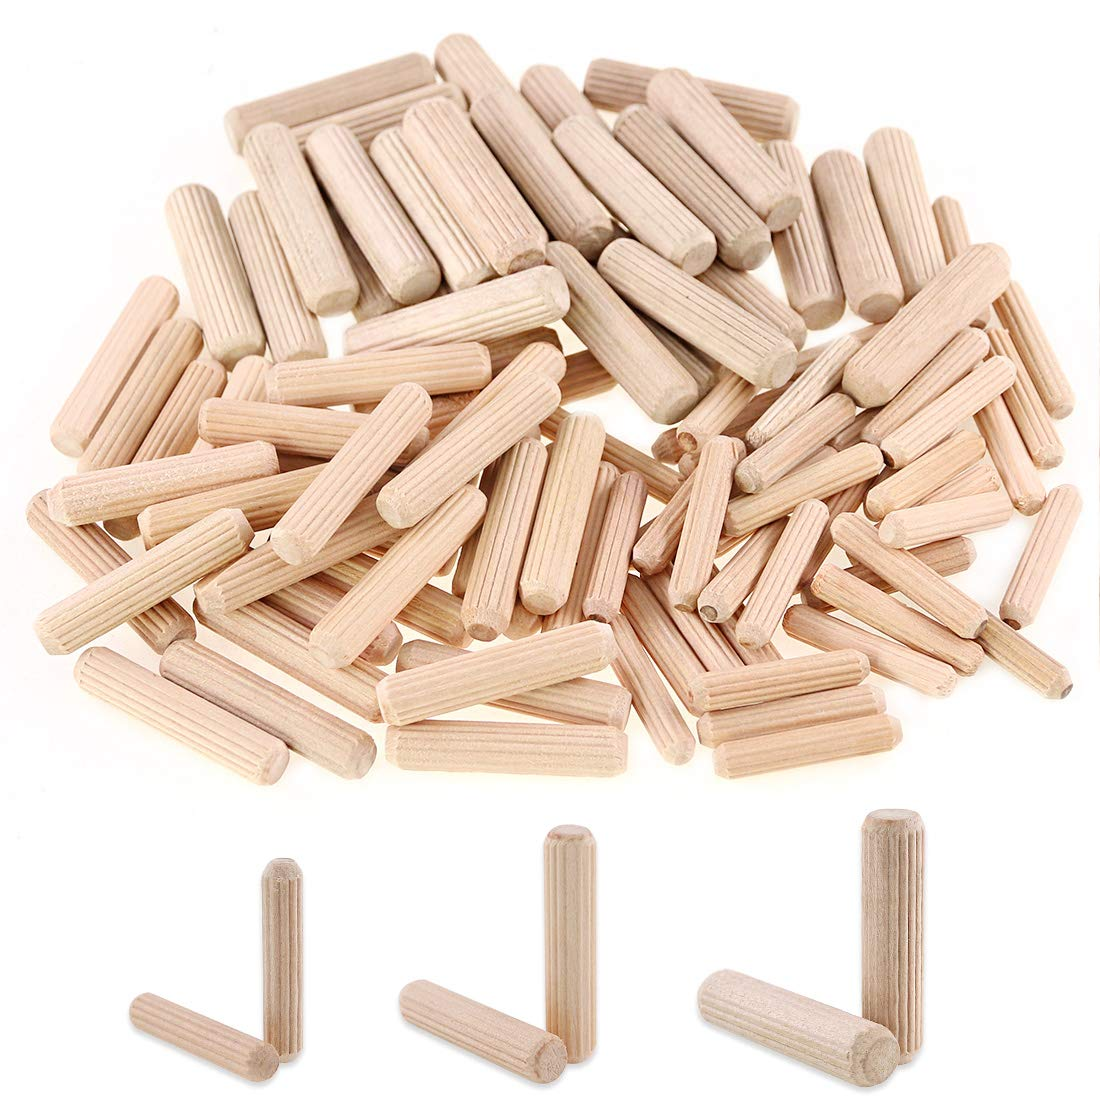 100pcs Wood Dowel Pins Beveled Ends Tapered For Easier Insertion Straight Grooved Pins For Furniture Door And Art Projects